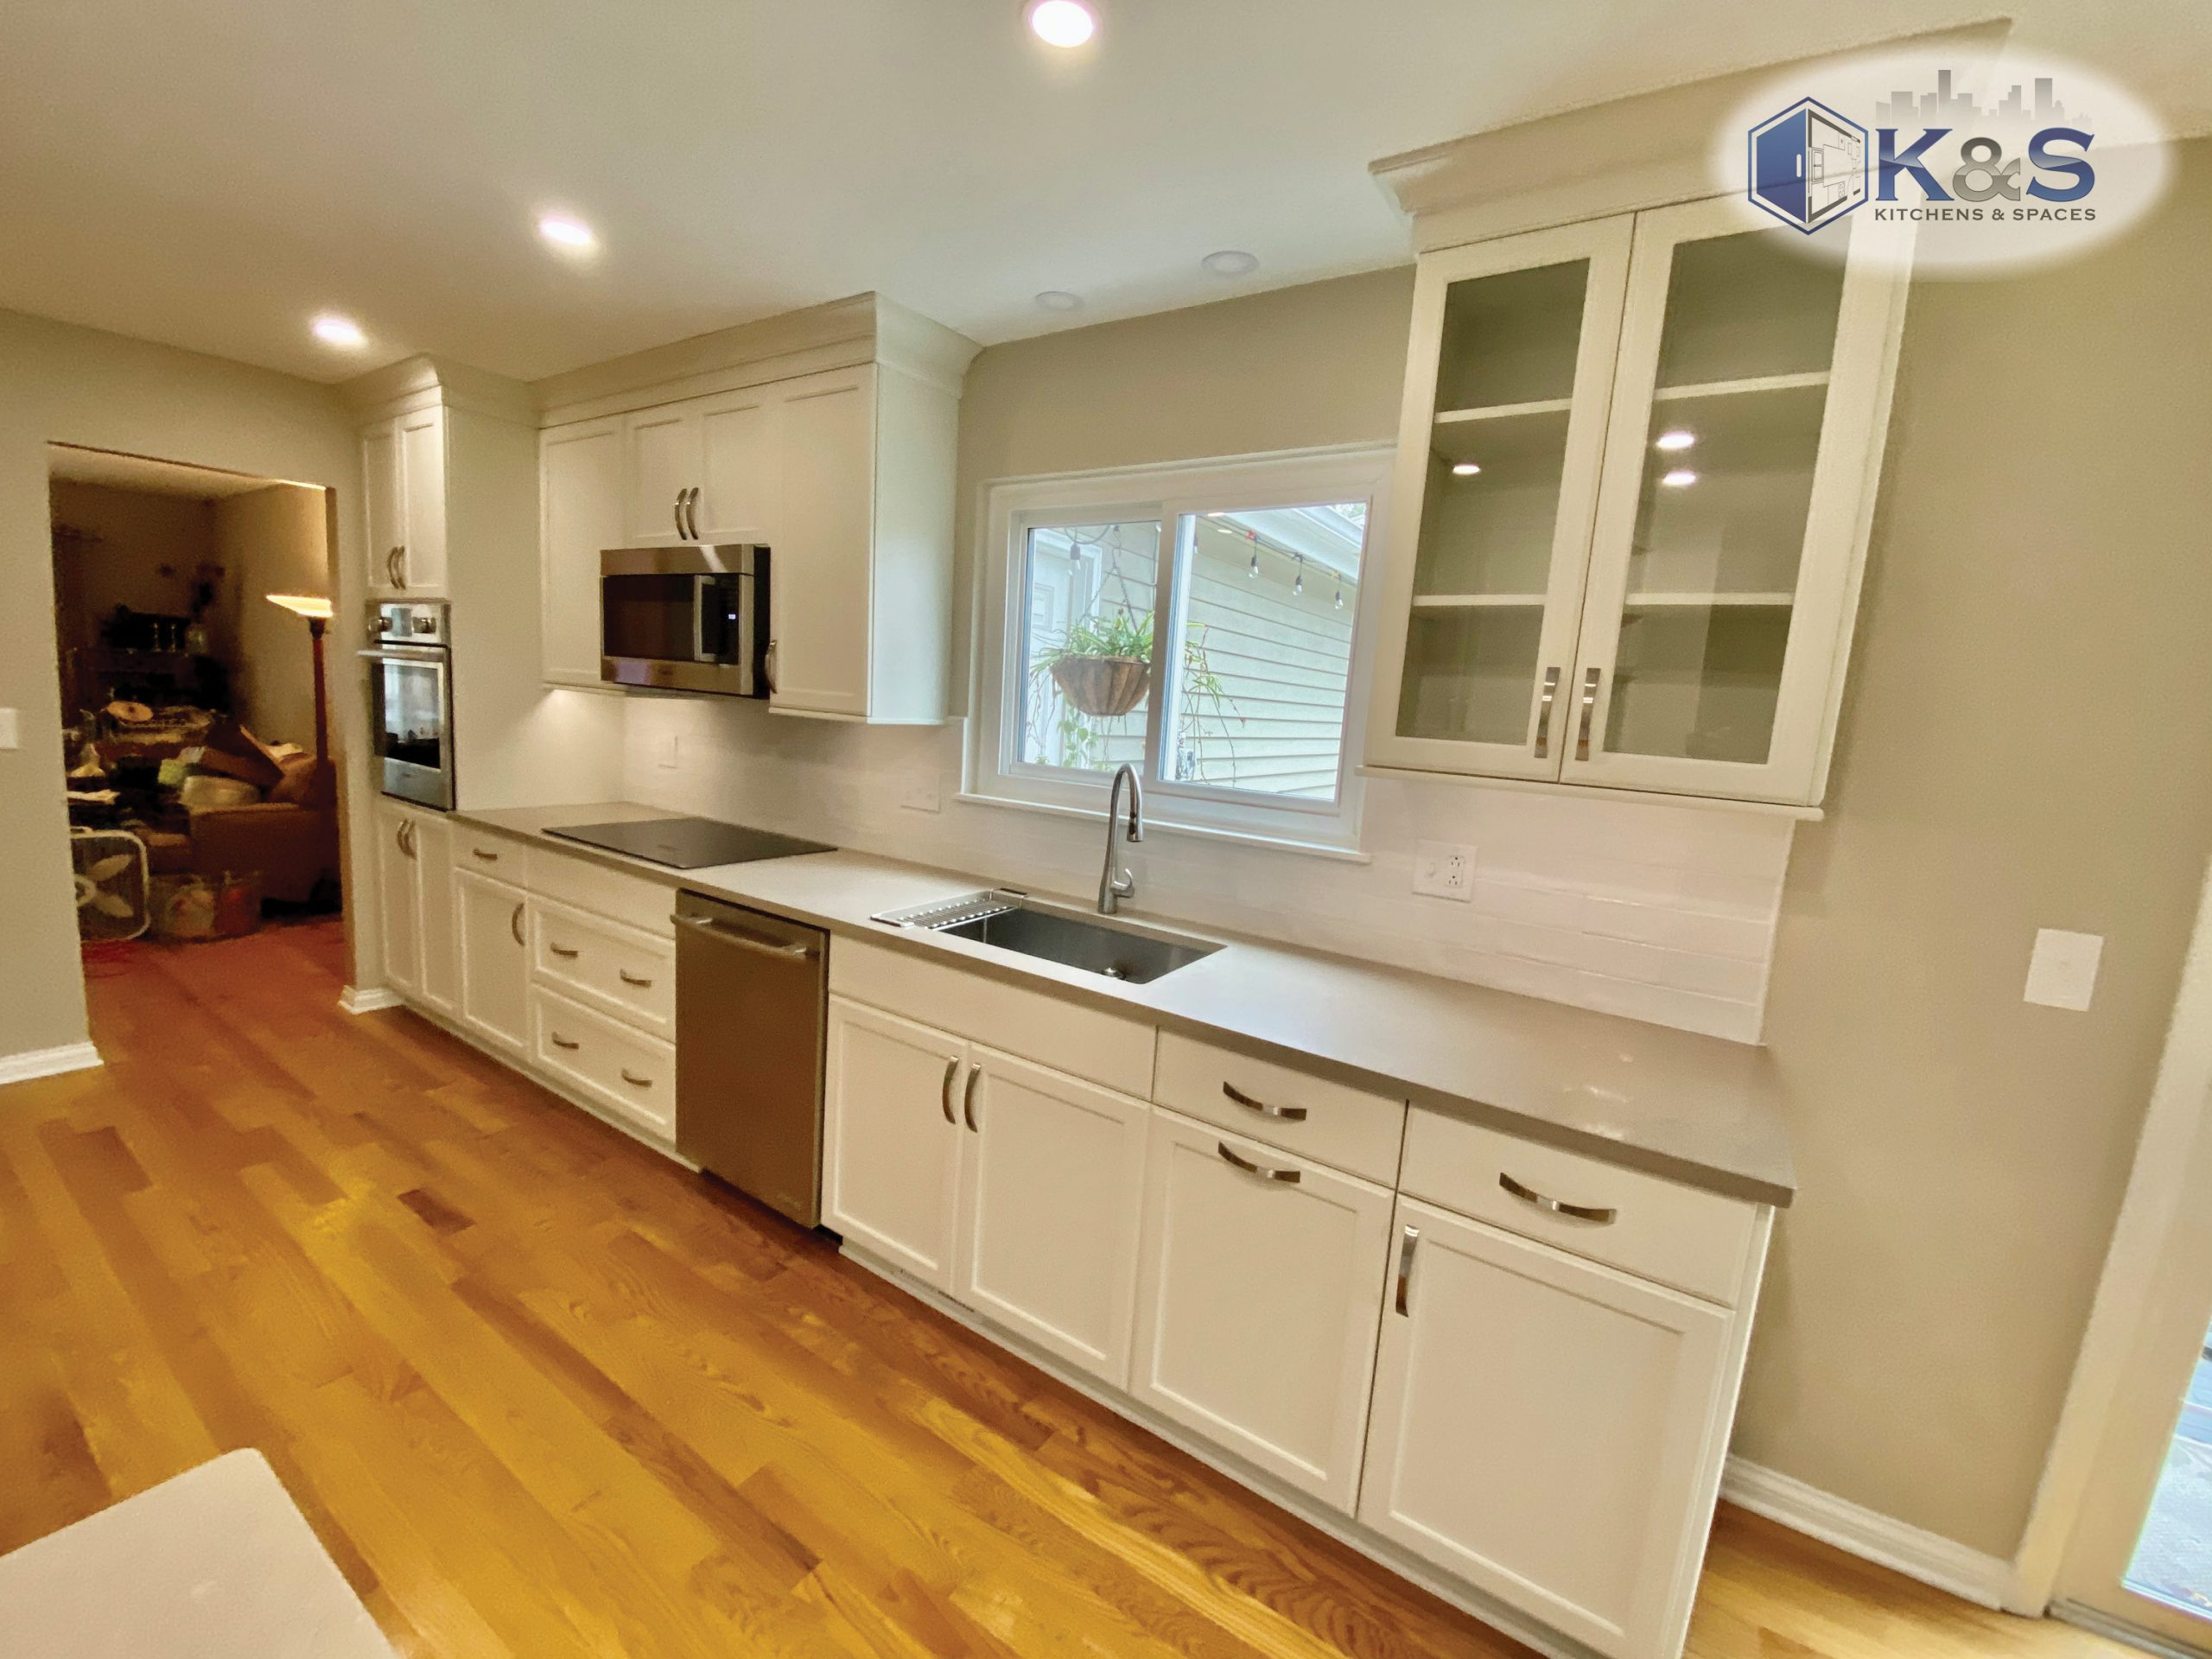 Woodridge IL kitchen remodeling project